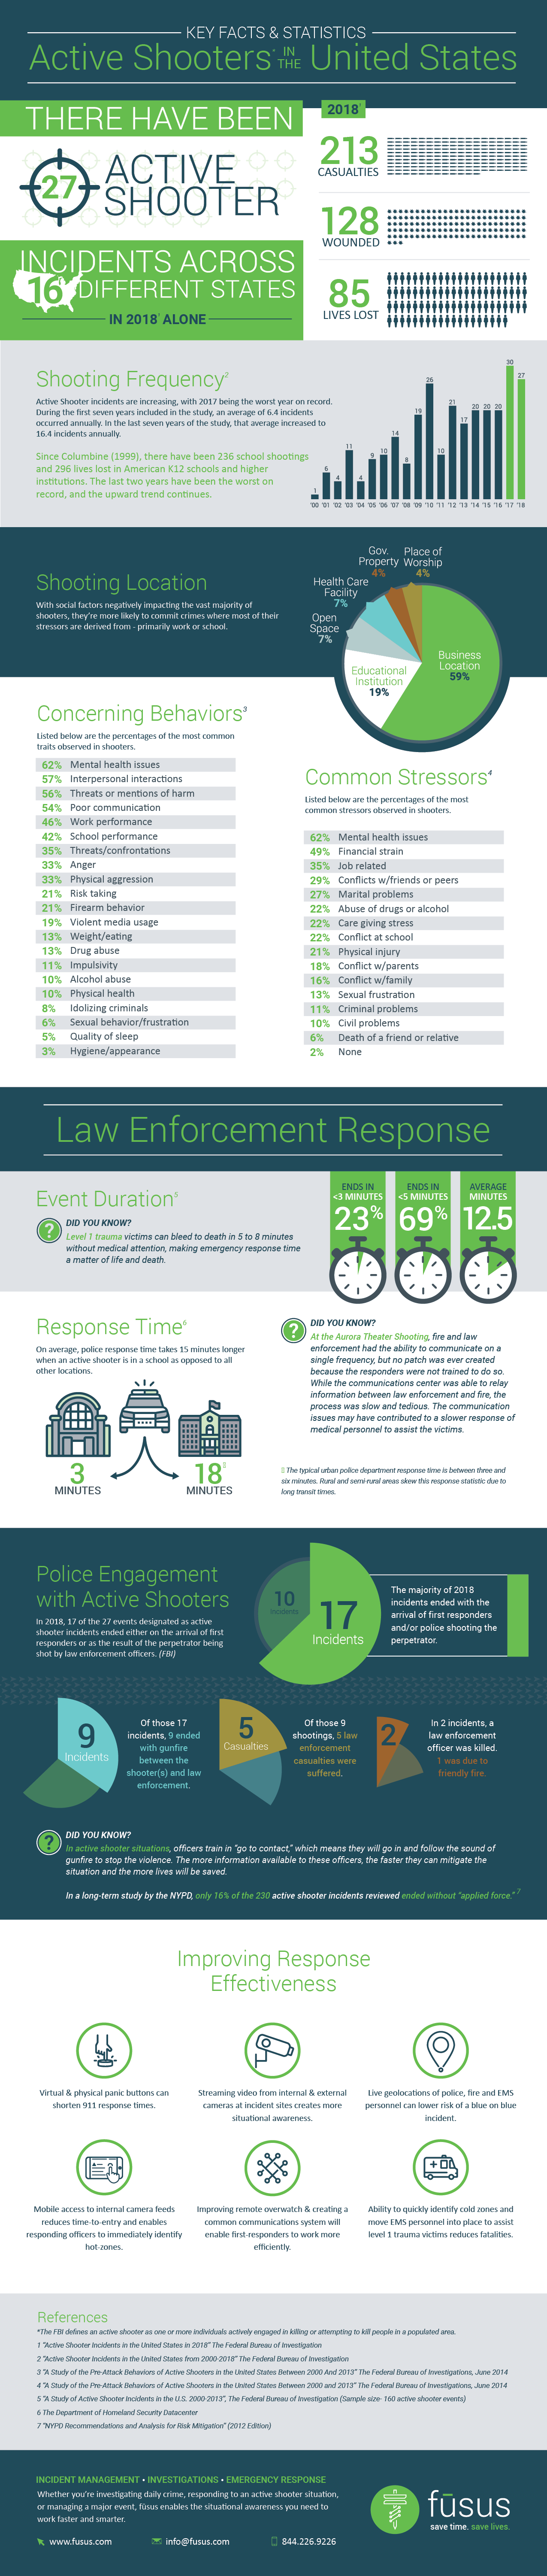 Active Shooters in the United States- Key Facts & Statistics 2018 #infographic